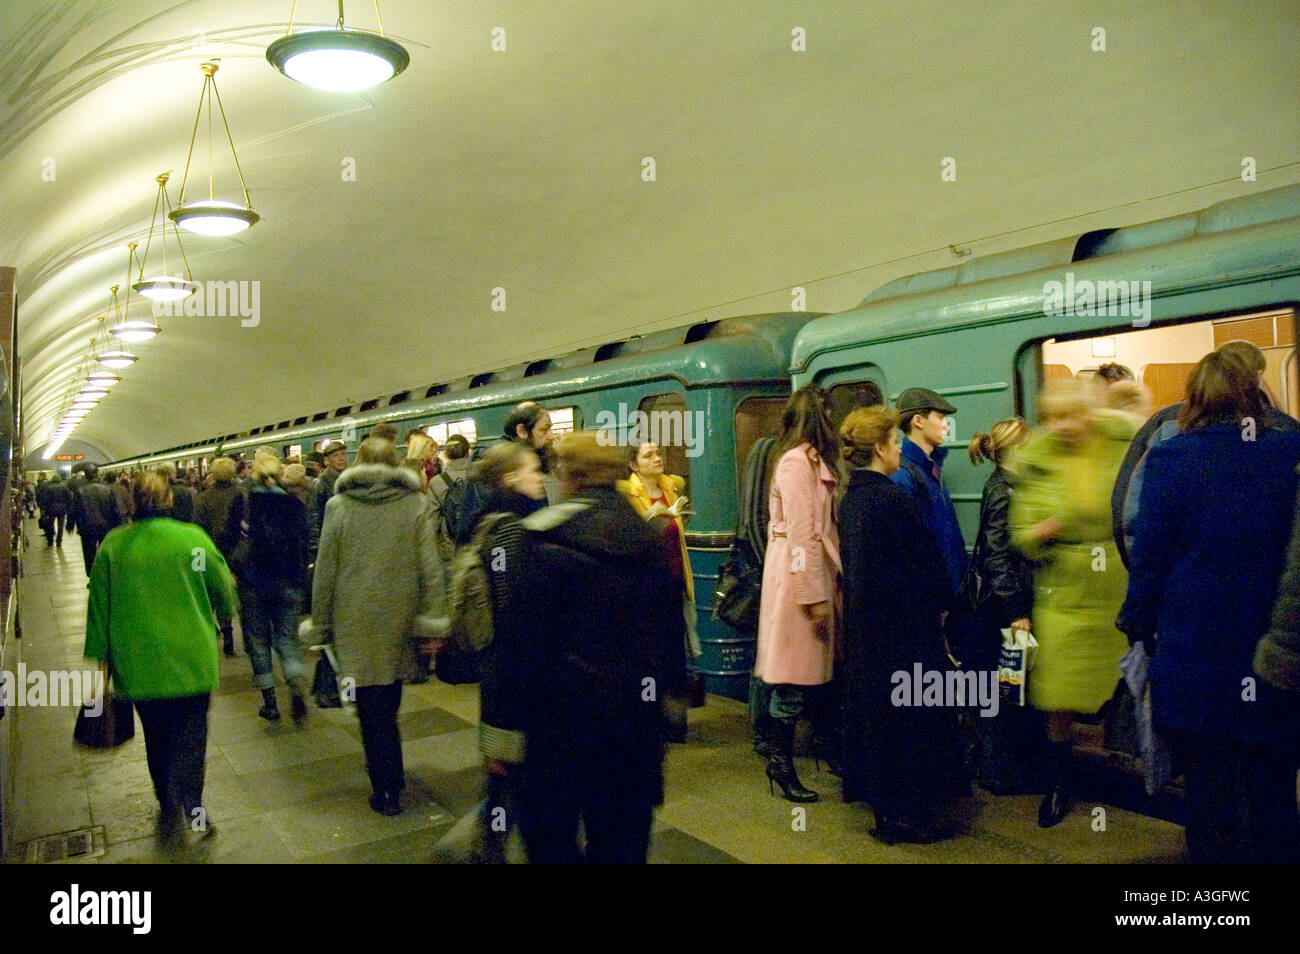 rush hour commuters riding the moscow metro - Stock Image